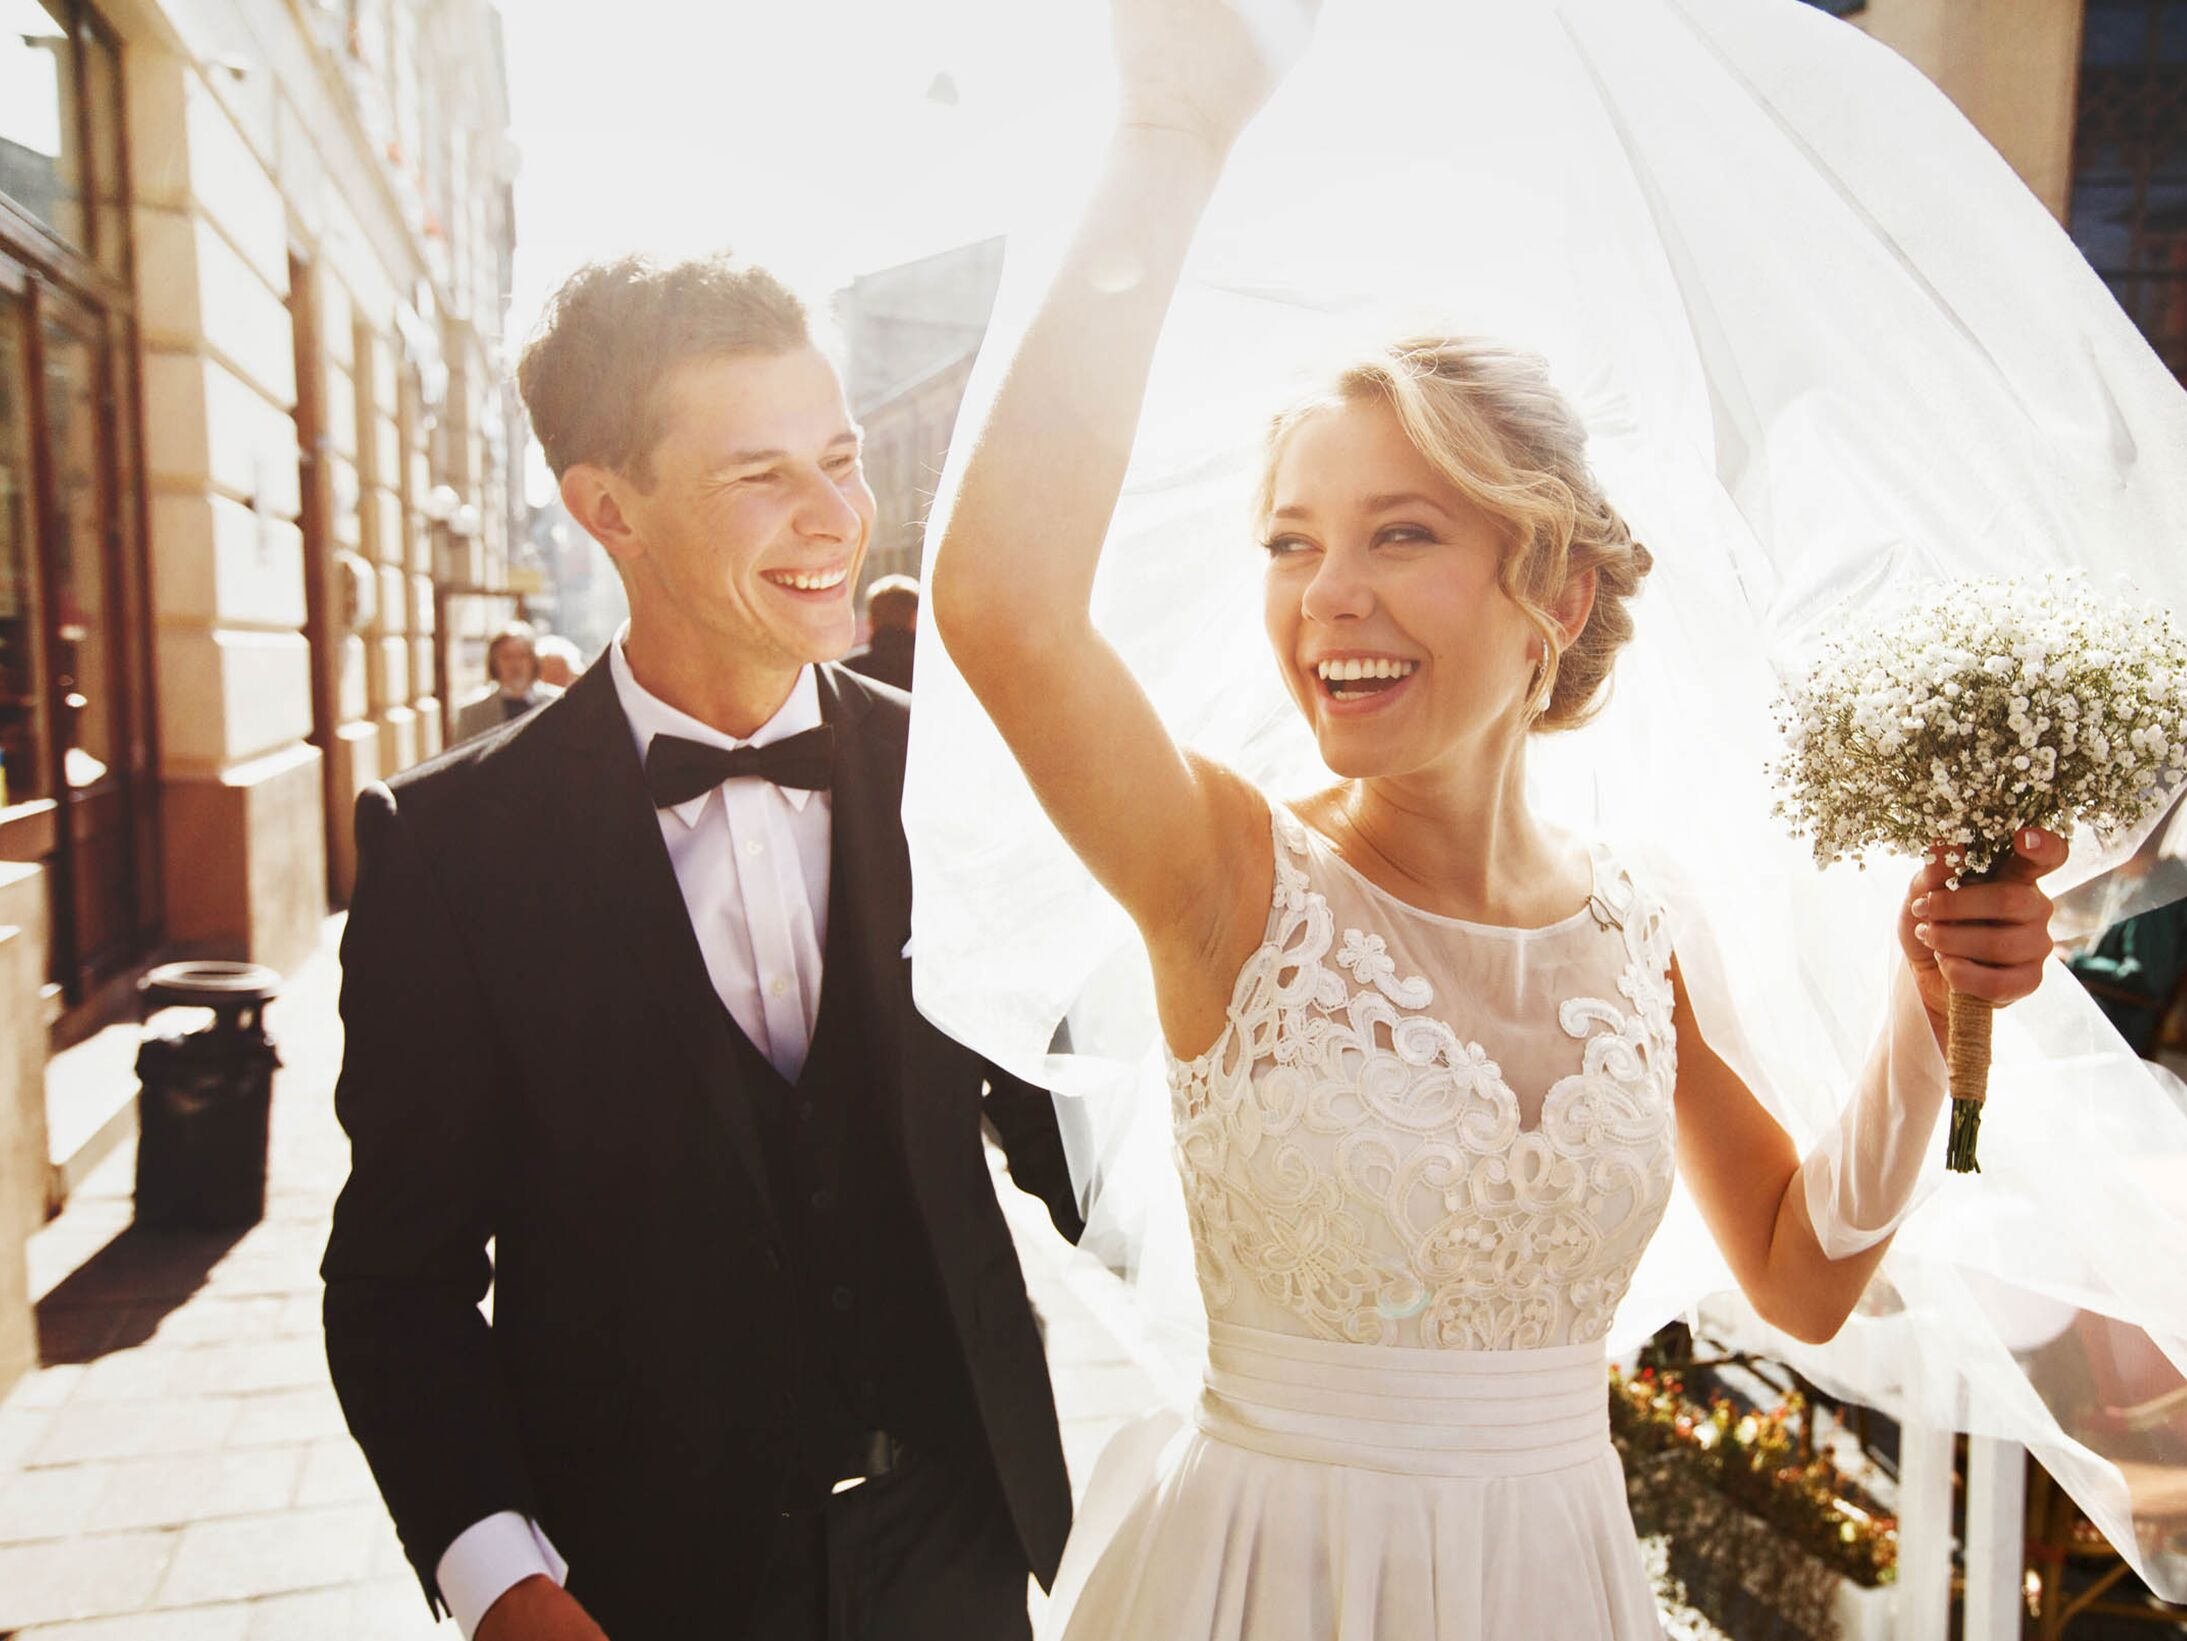 How To Prevent Sweating At Your Wedding